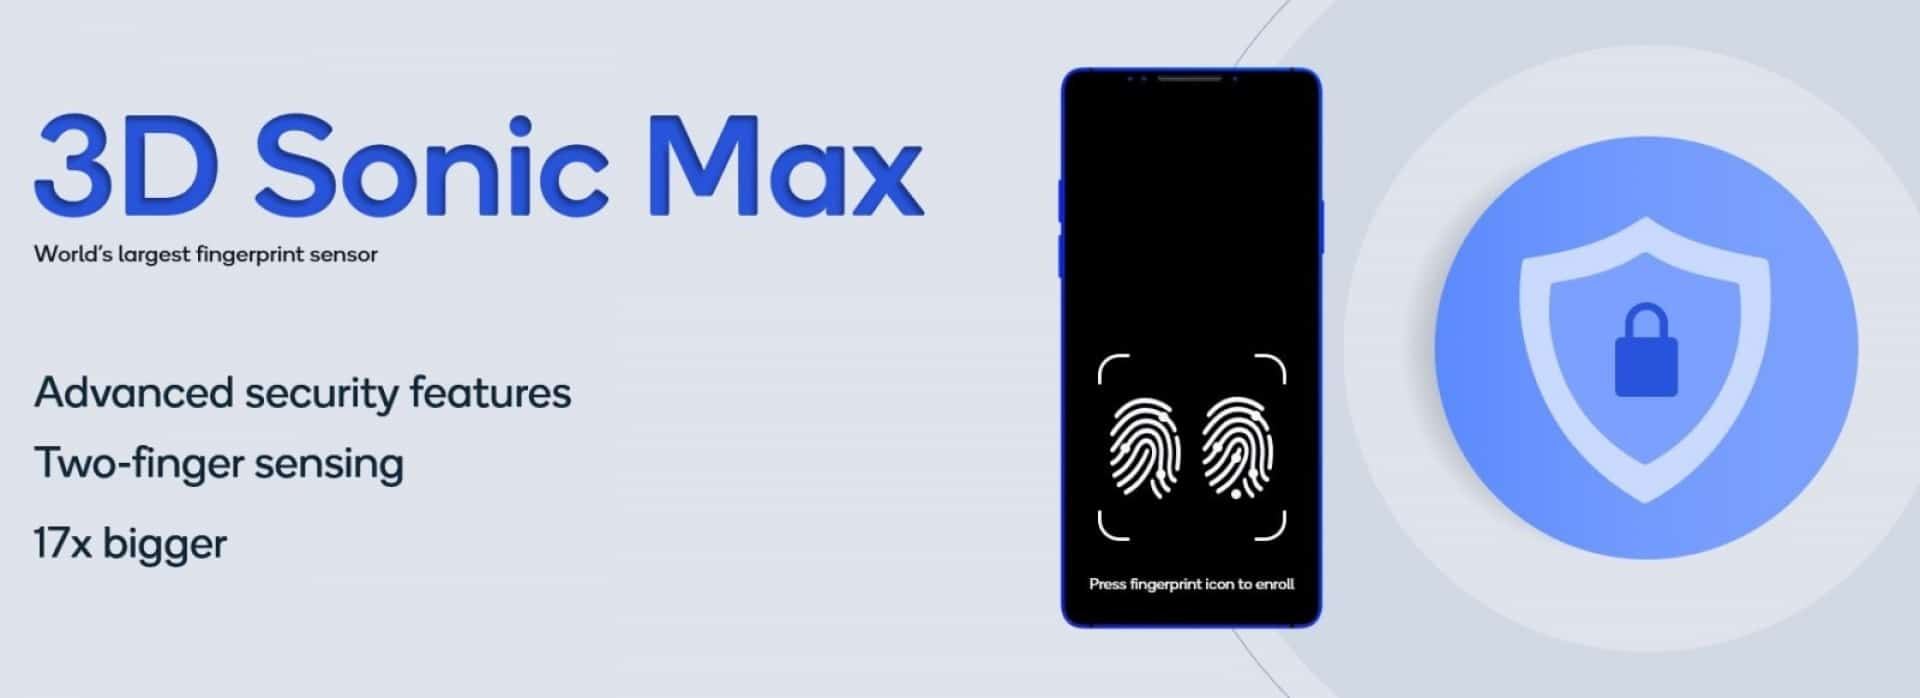 next-generation-iphone-may-have-underdisplay-ultrasonic-fingerprint-scanner-report 2